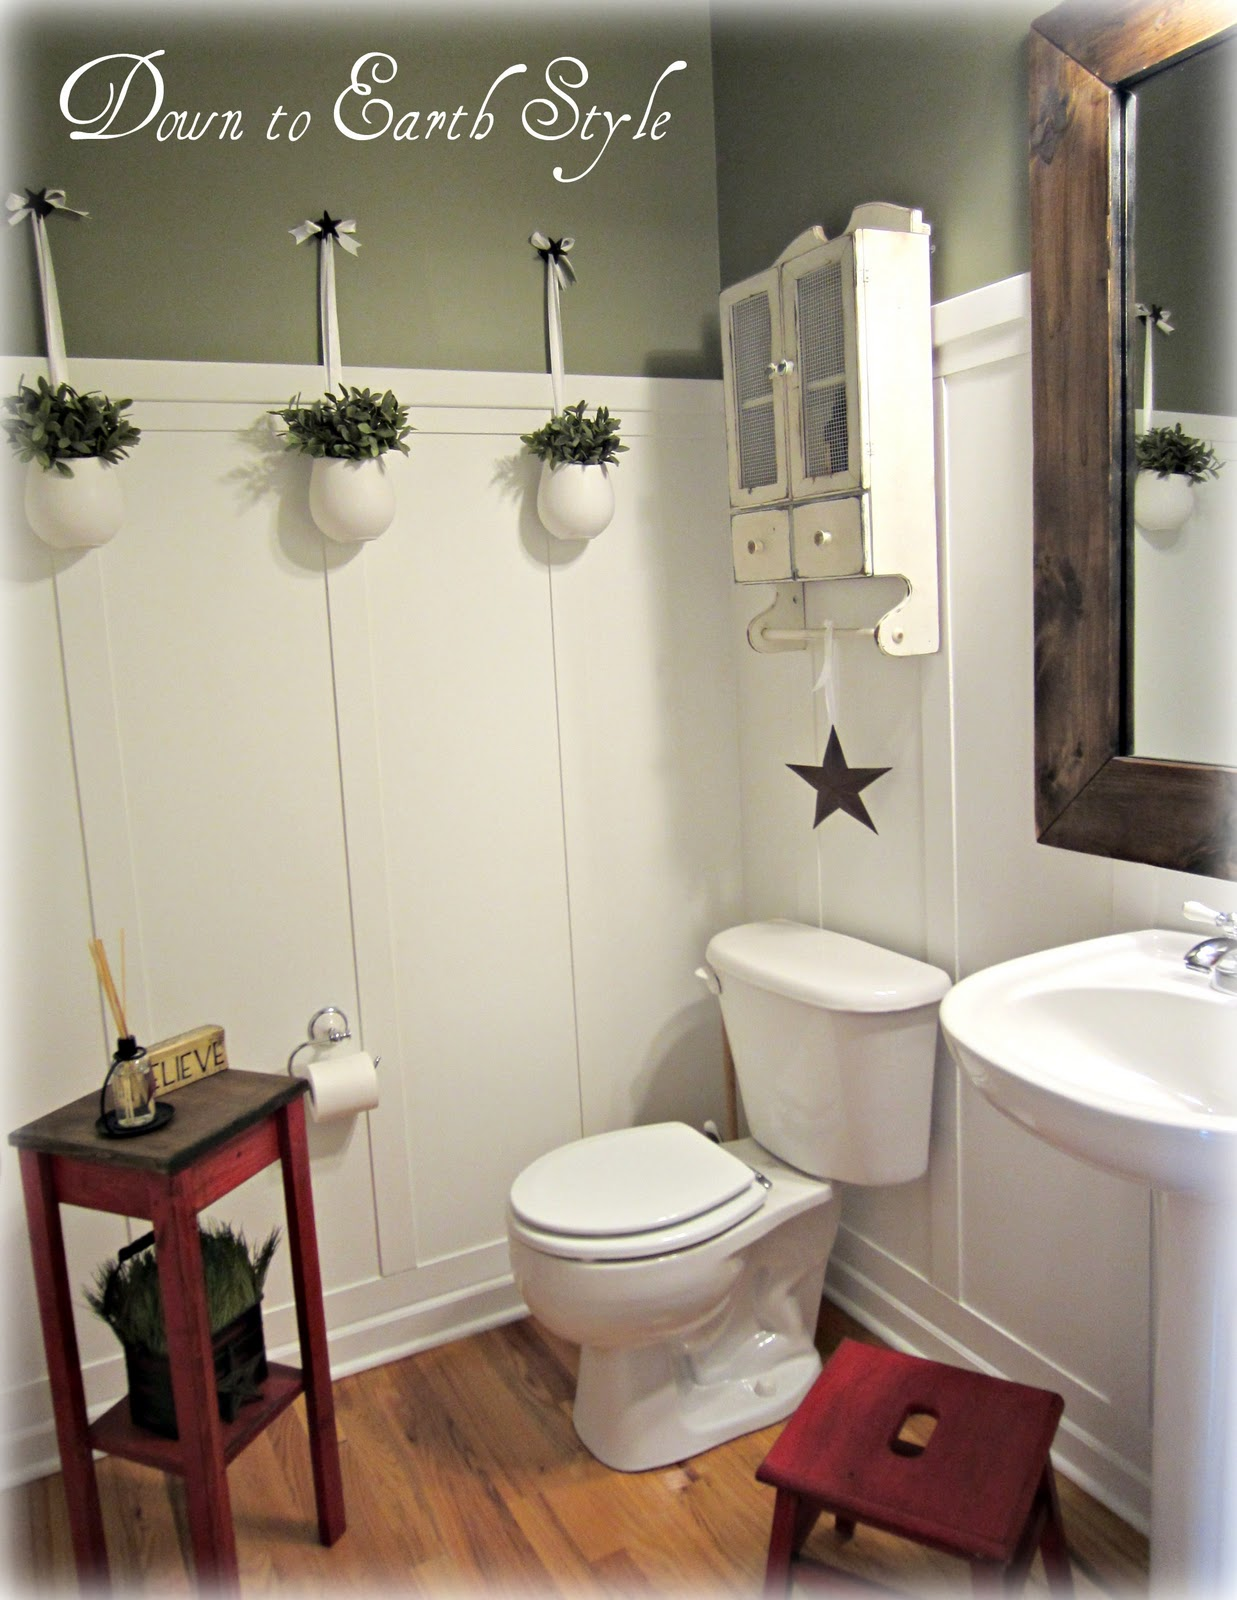 Down to Earth Style: Board & Batten Bathroom